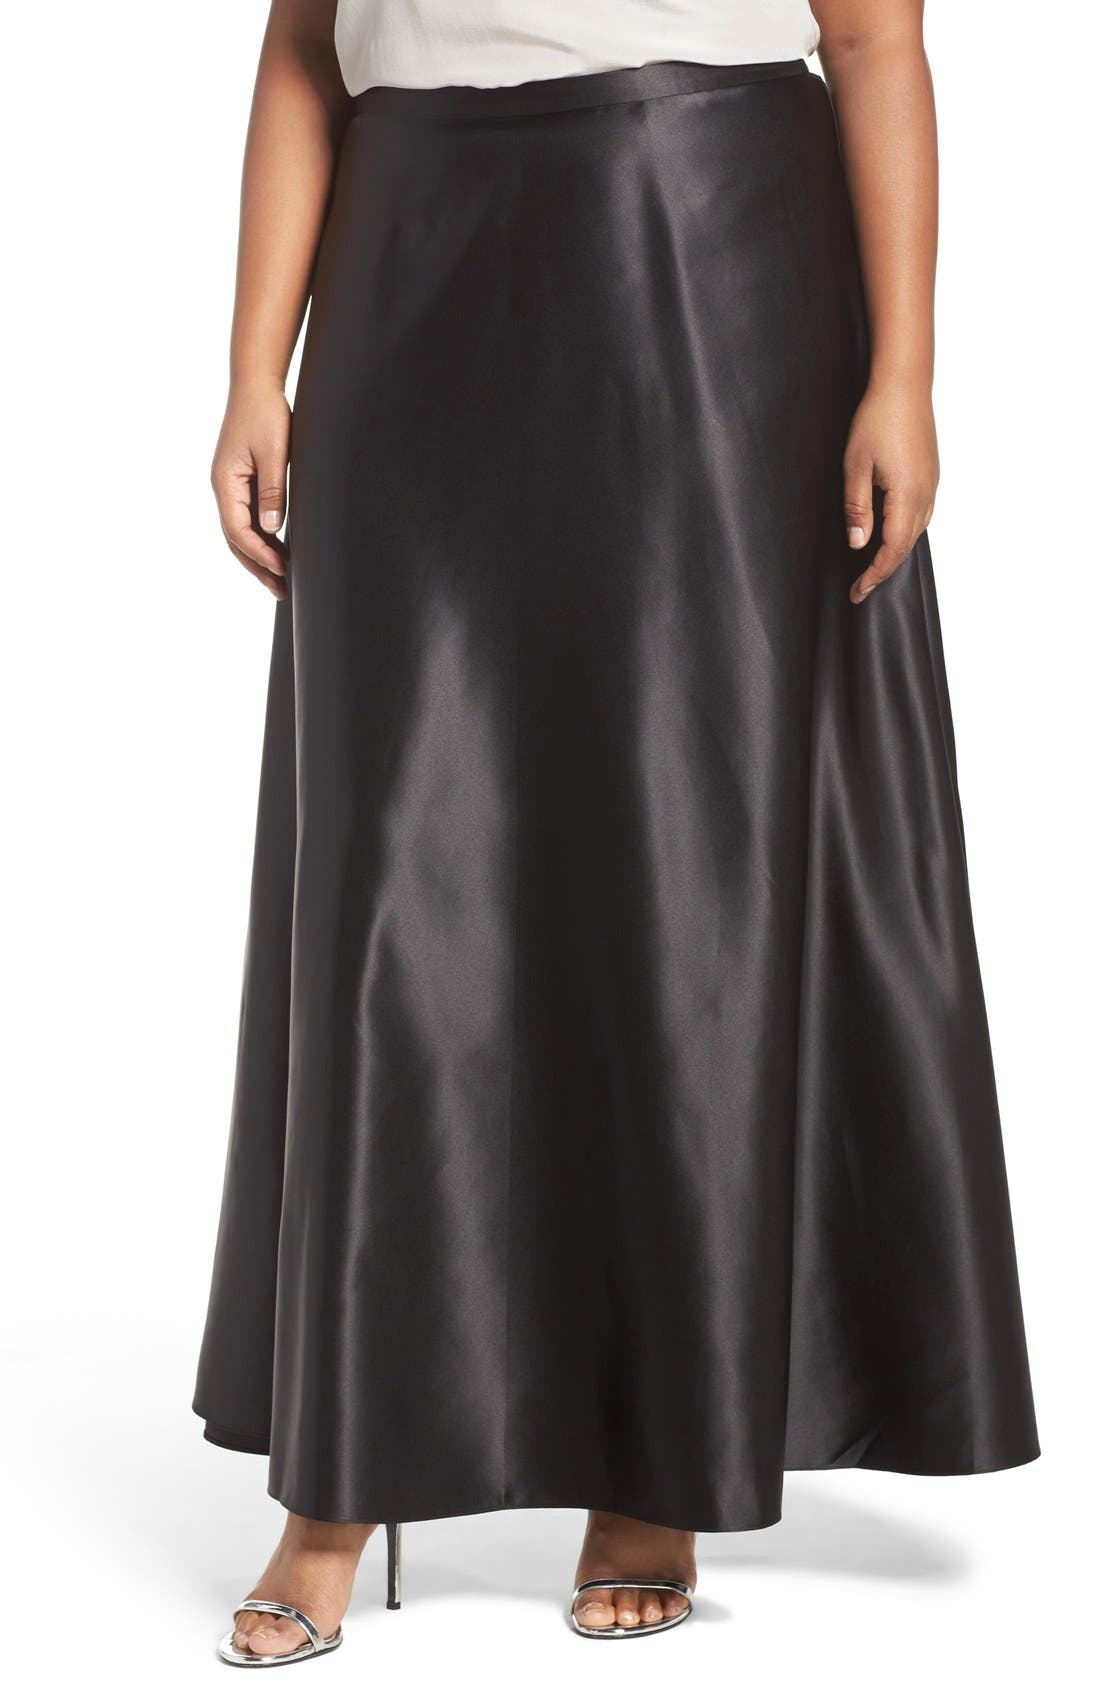 Alternate Image 1 Selected - Alex Evenings Satin Long Circle Skirt (Plus Size)